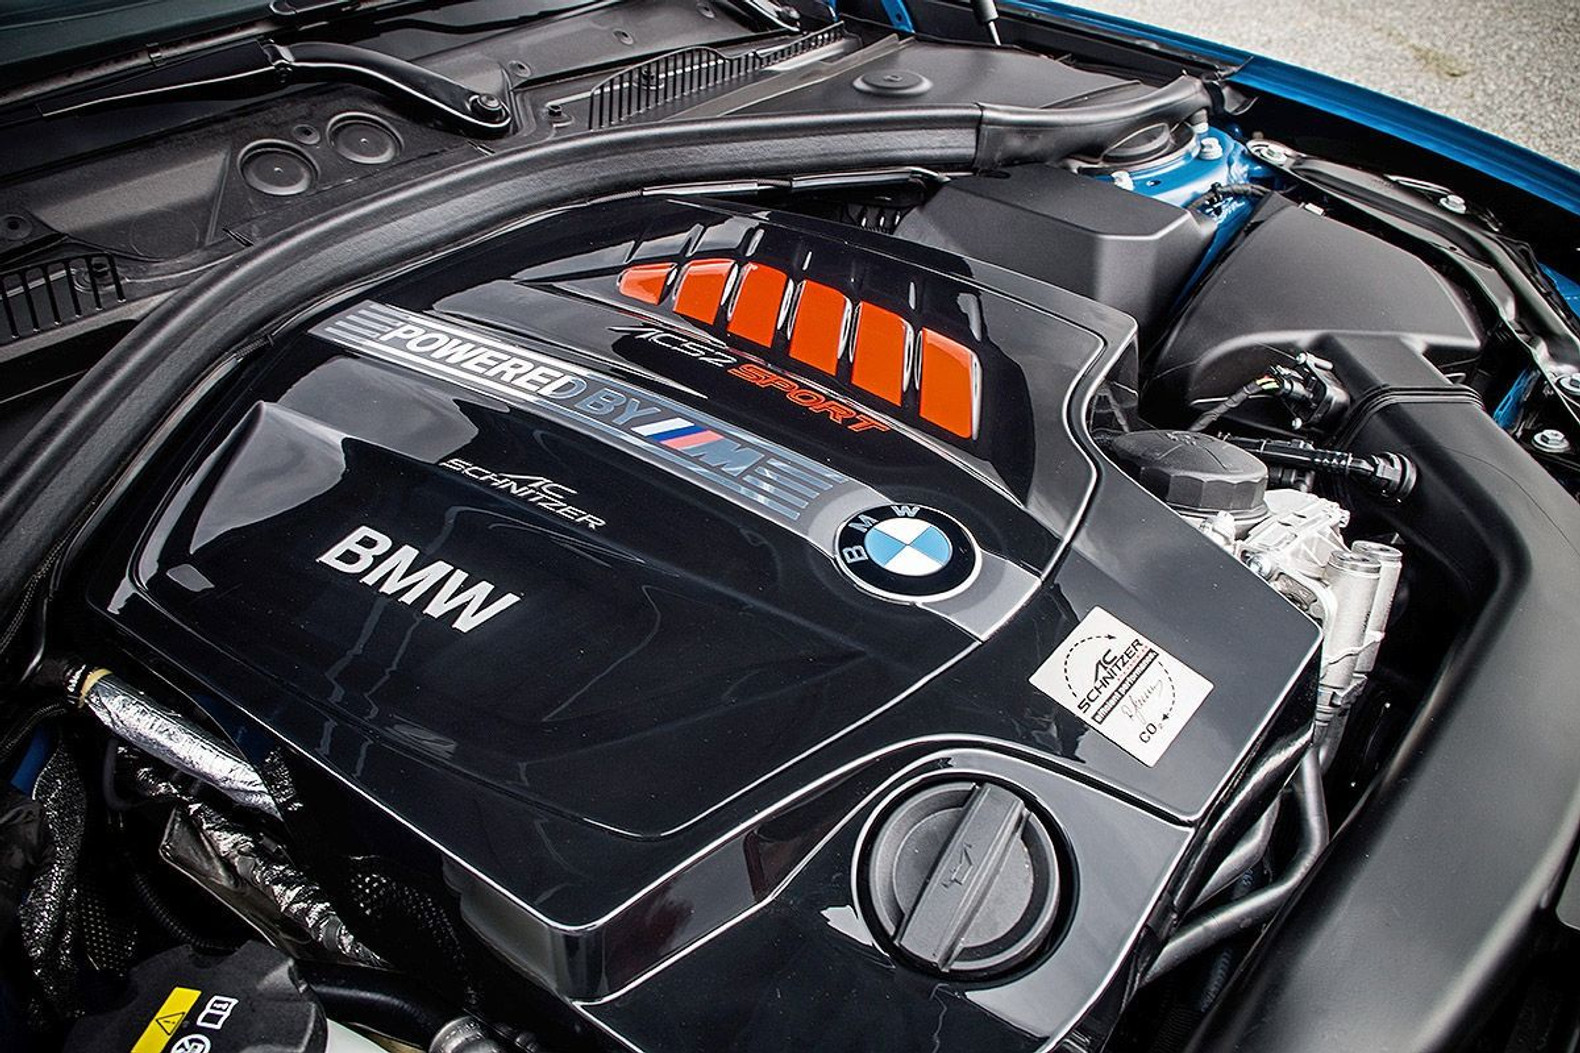 Ac Schnitzer Engine Cover For Bmw X3 F25 6cyl Performance M Bmw Mini Performance Parts Specialists